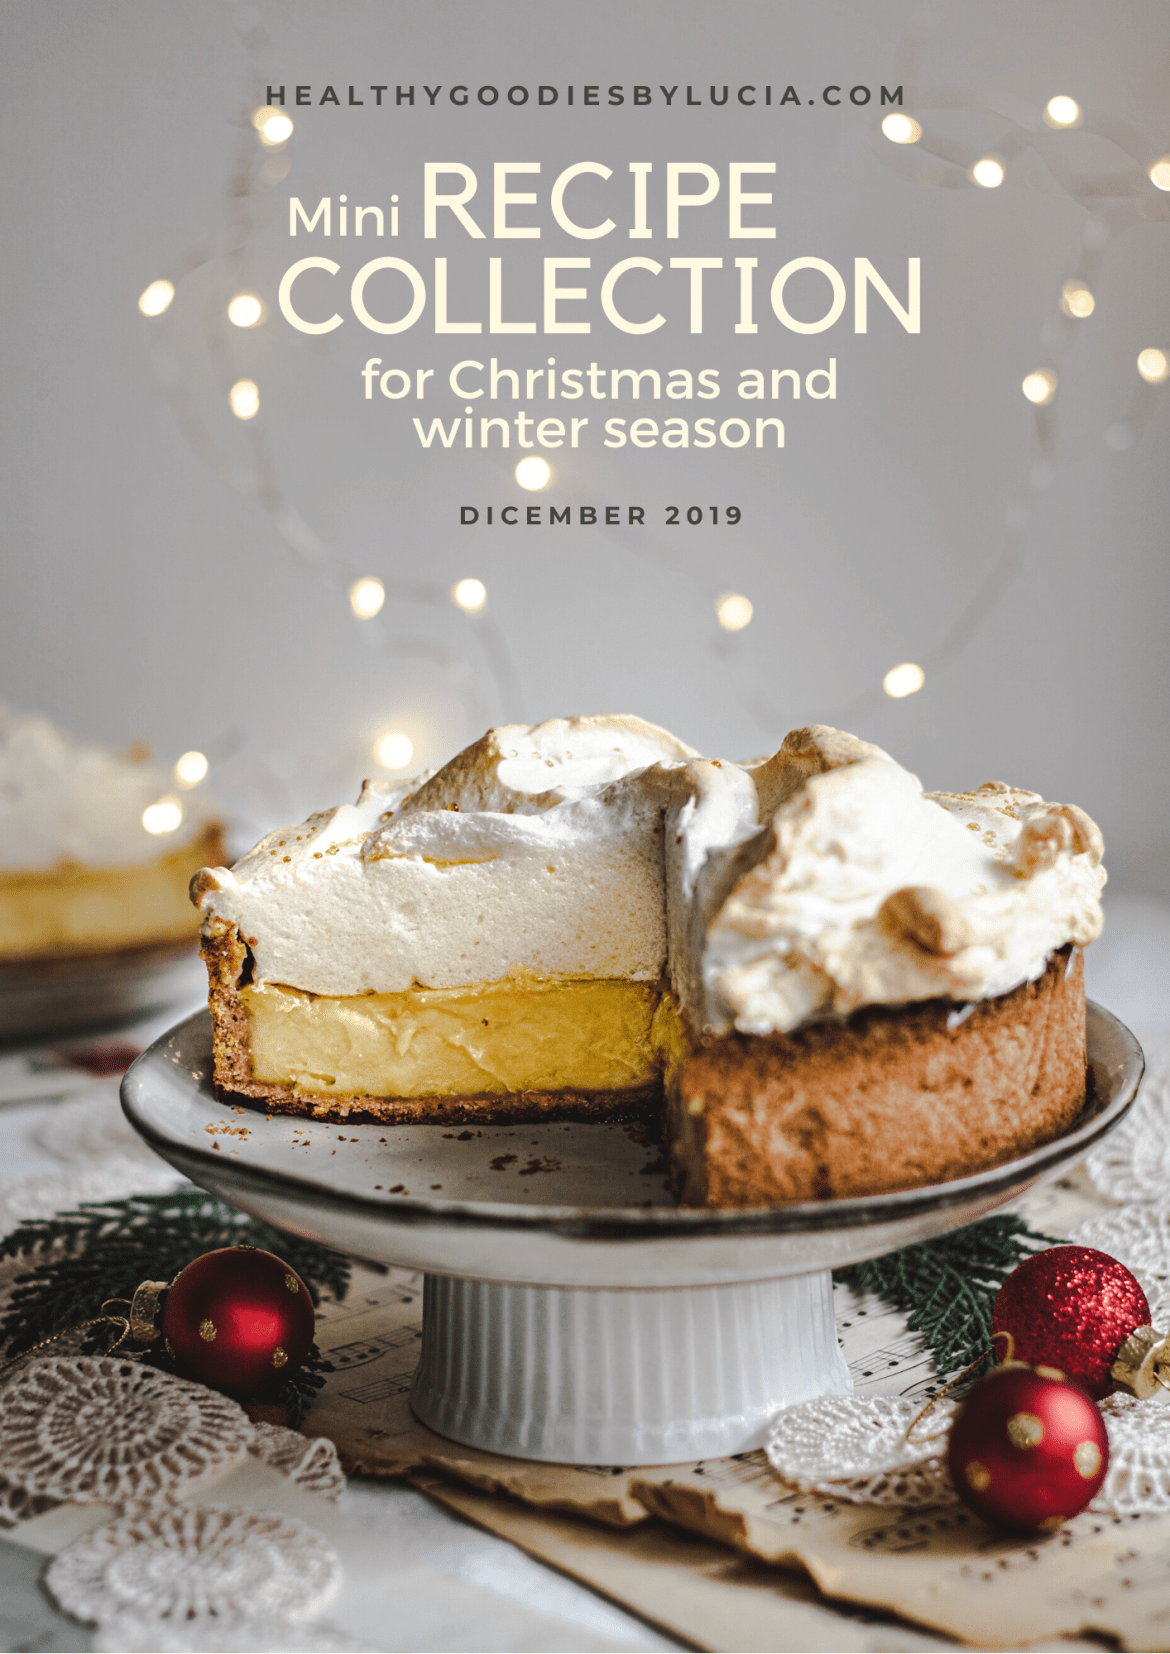 Mini Recipe Collection for winter and Christmas | Healthy Goodies by Lucia